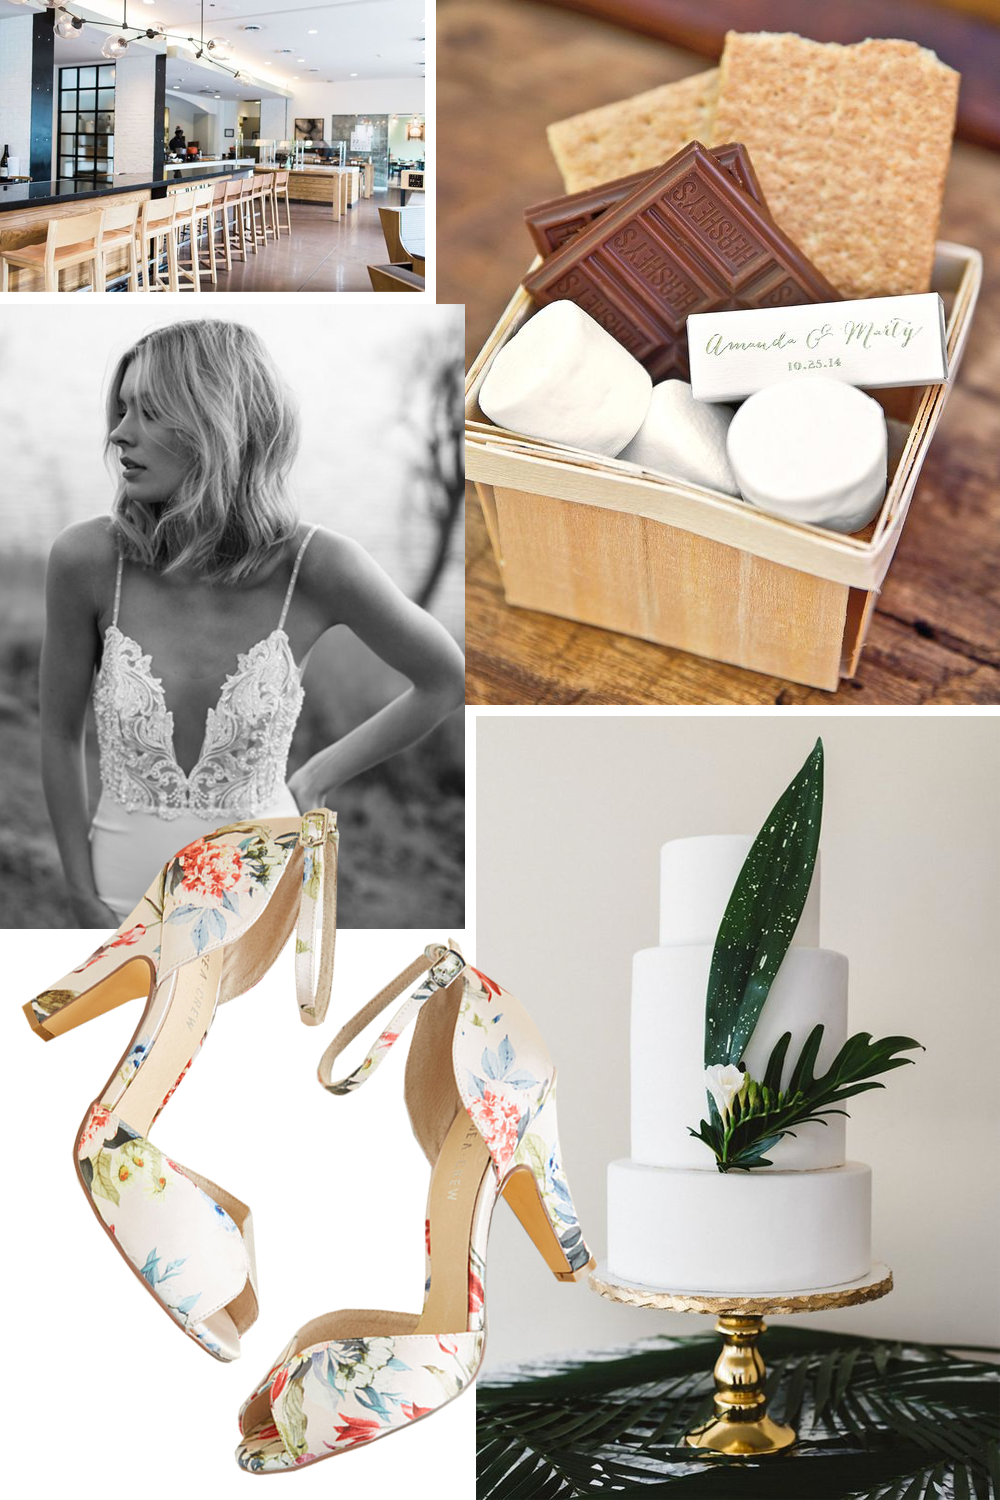 andaz-savannah-wedding-ivory-and-beau-savannah-wedding-planner-savannah-wedding-florist-savannah-event-designer-rooftop-modern-wedding-inspiration-in-savannah-georgia-sienna-made-with-love-bridal-smores-bar-wedding-floral-modern-wedding.png